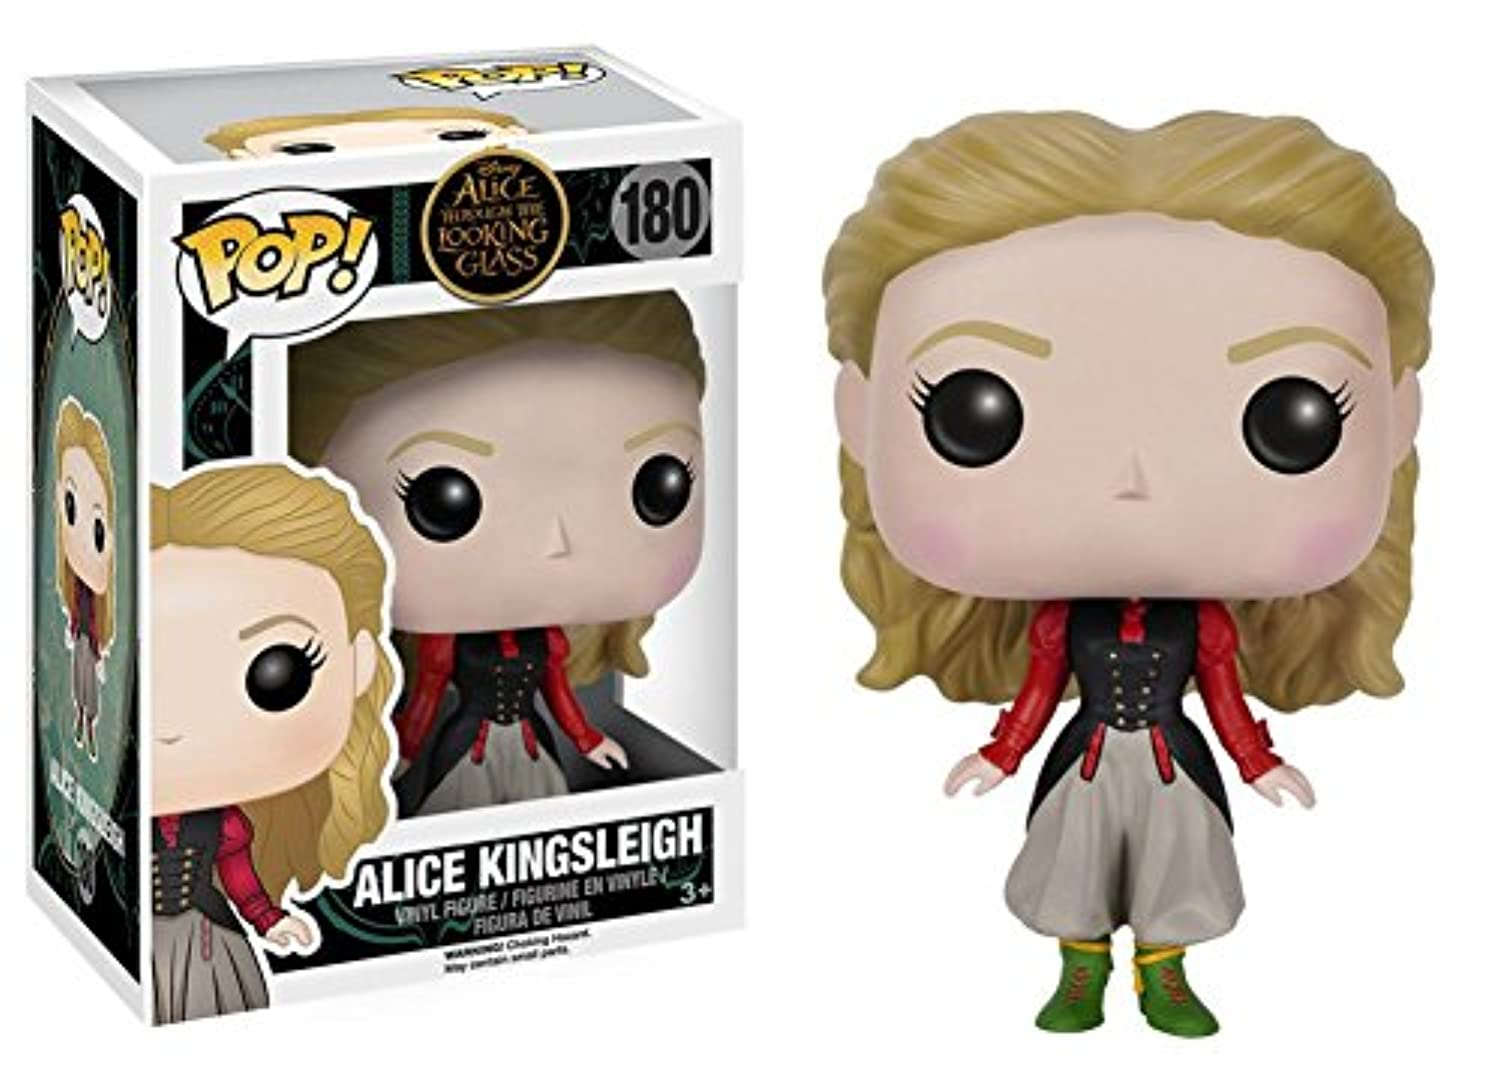 Alice Through the Looking Glass – アリスのアリス) Pop Figure Toy 3 x 4 in